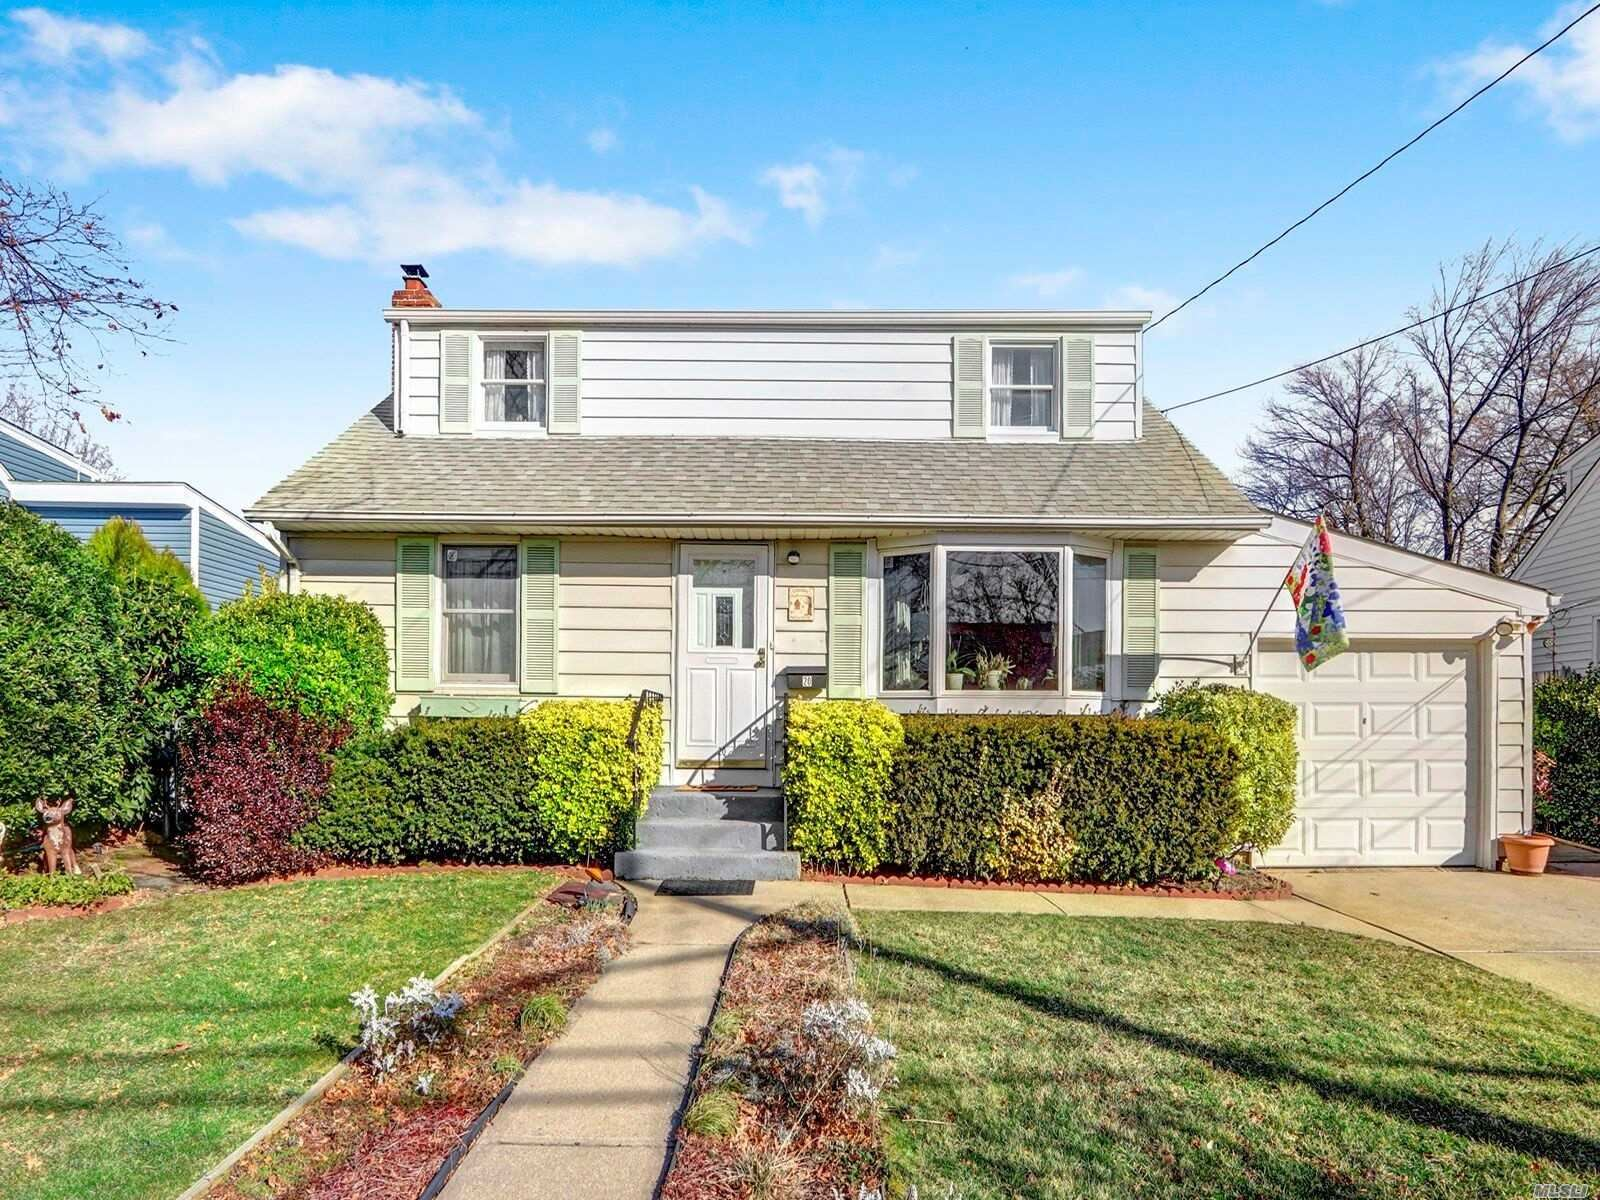 20 Kensington Avenue, Massapequa, NY 11758 - MLS#: 3196377